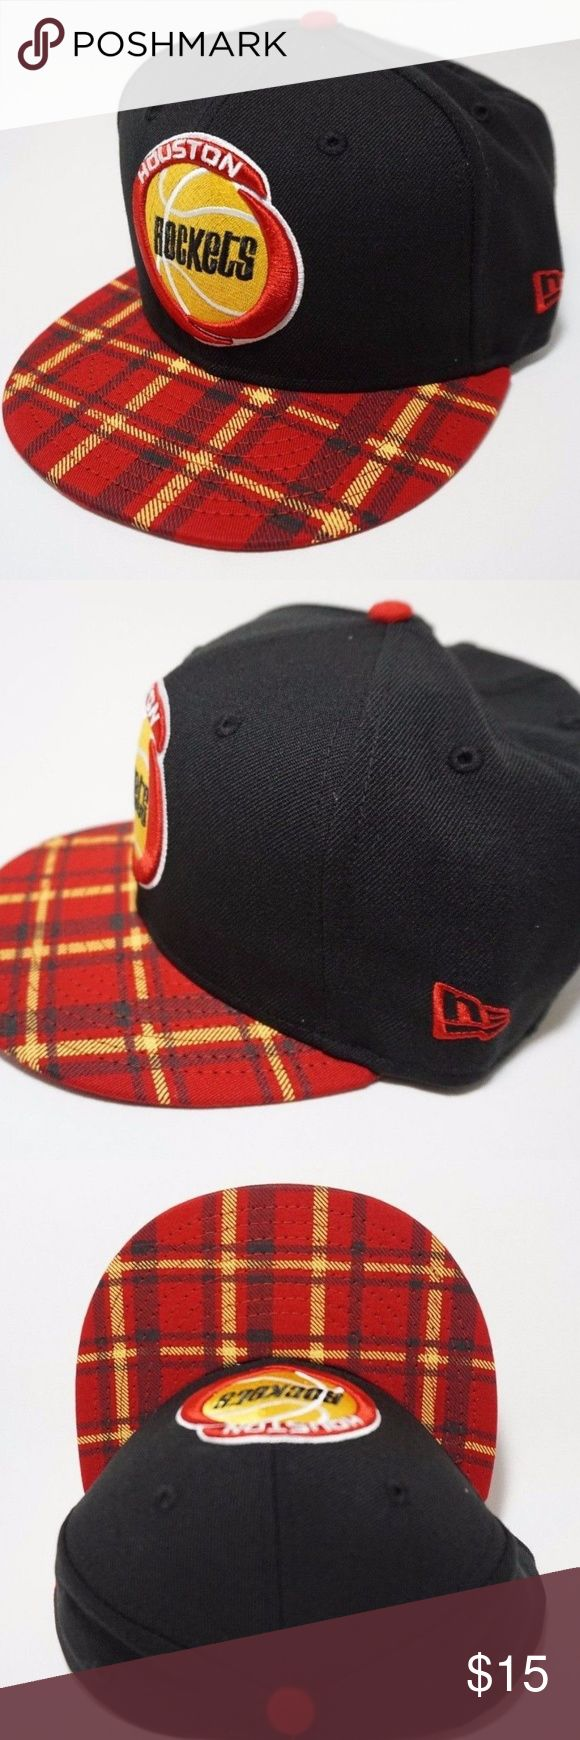 Houston Rockets NBA New Era Snapback Cap 9FIFTY New With Stickers Houston Rockets New Era 9FIFTY NBA HWC Team Plaid Snapback Cap 100% Authentic guaranteed.  Material: Made of 70% Wool, Woven, 30% Polyester, Woven Snapback, Adjustable  Crown: High Closure: Snap Fit: Structured  All items are kept in smoke-free & pet-free facility. New Era Accessories Hats